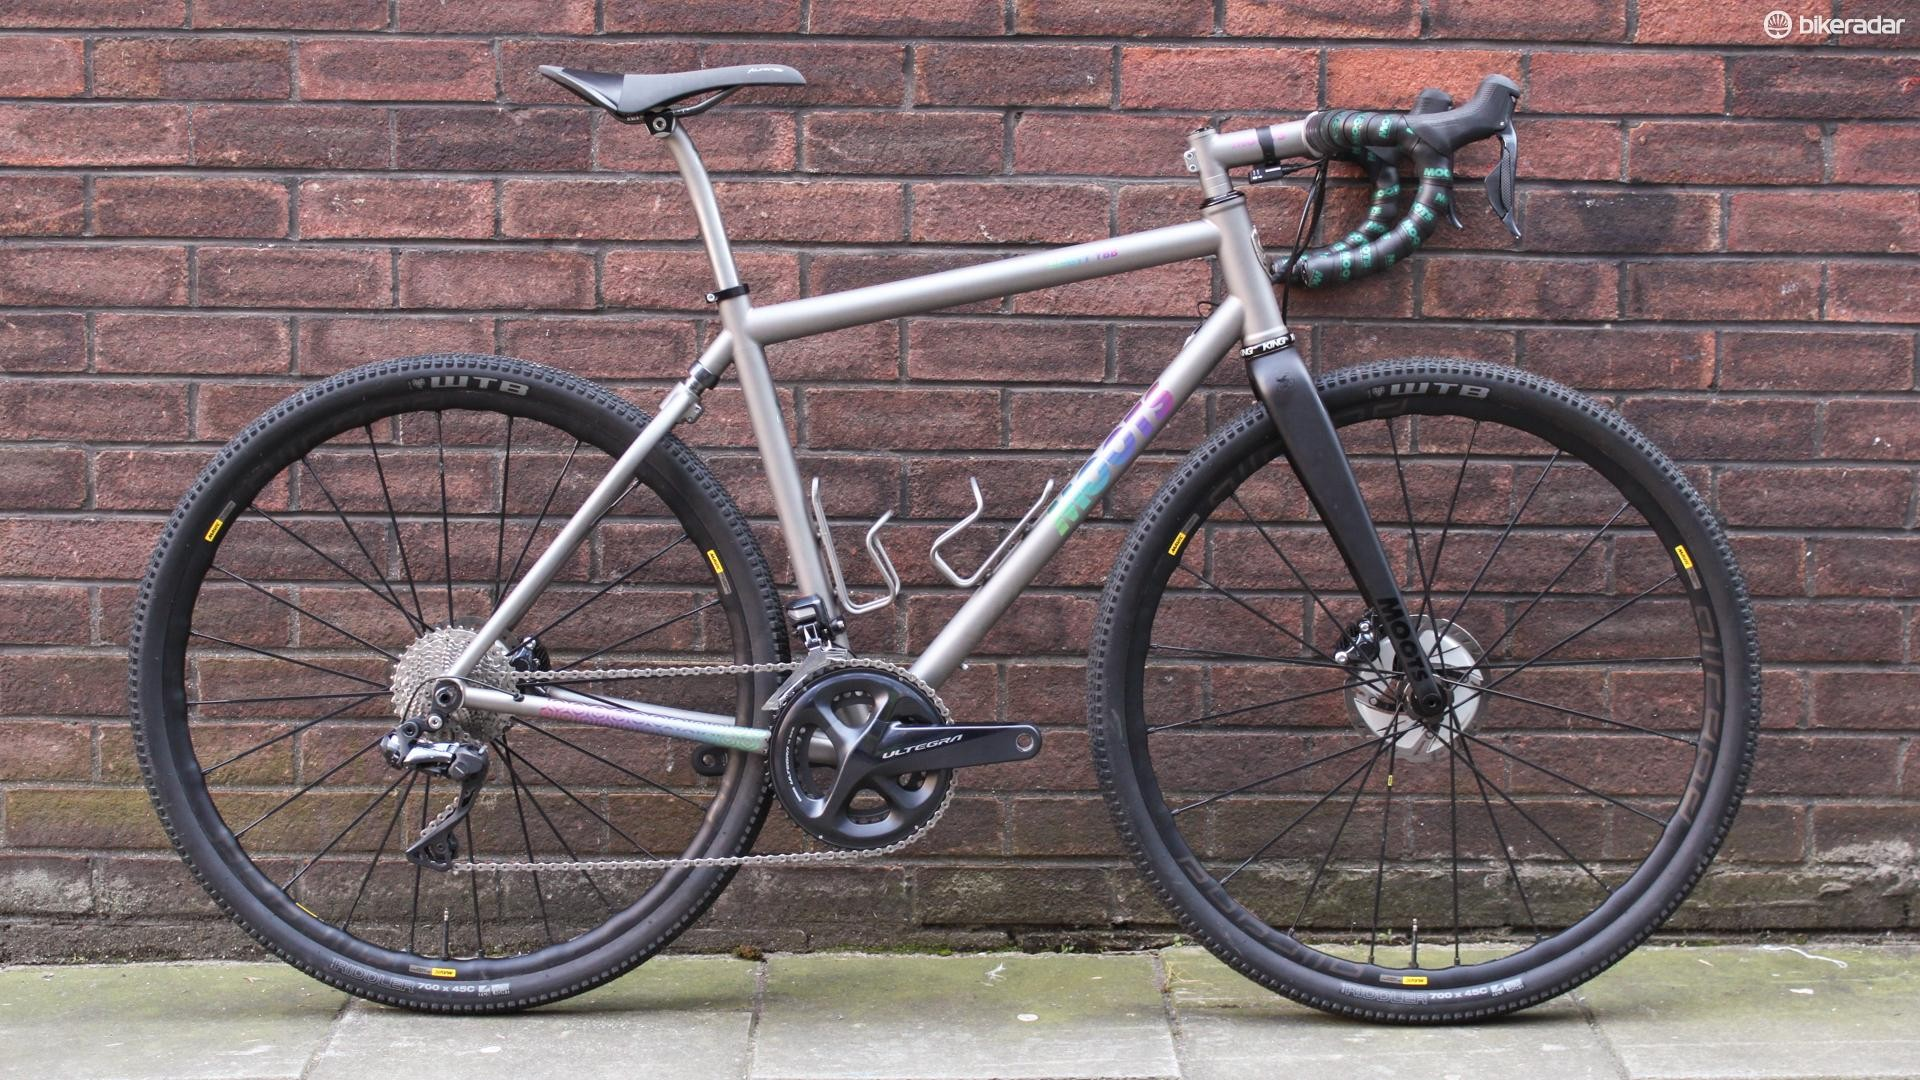 The Moots Routt RBB is part gravel racer, part retro MTB